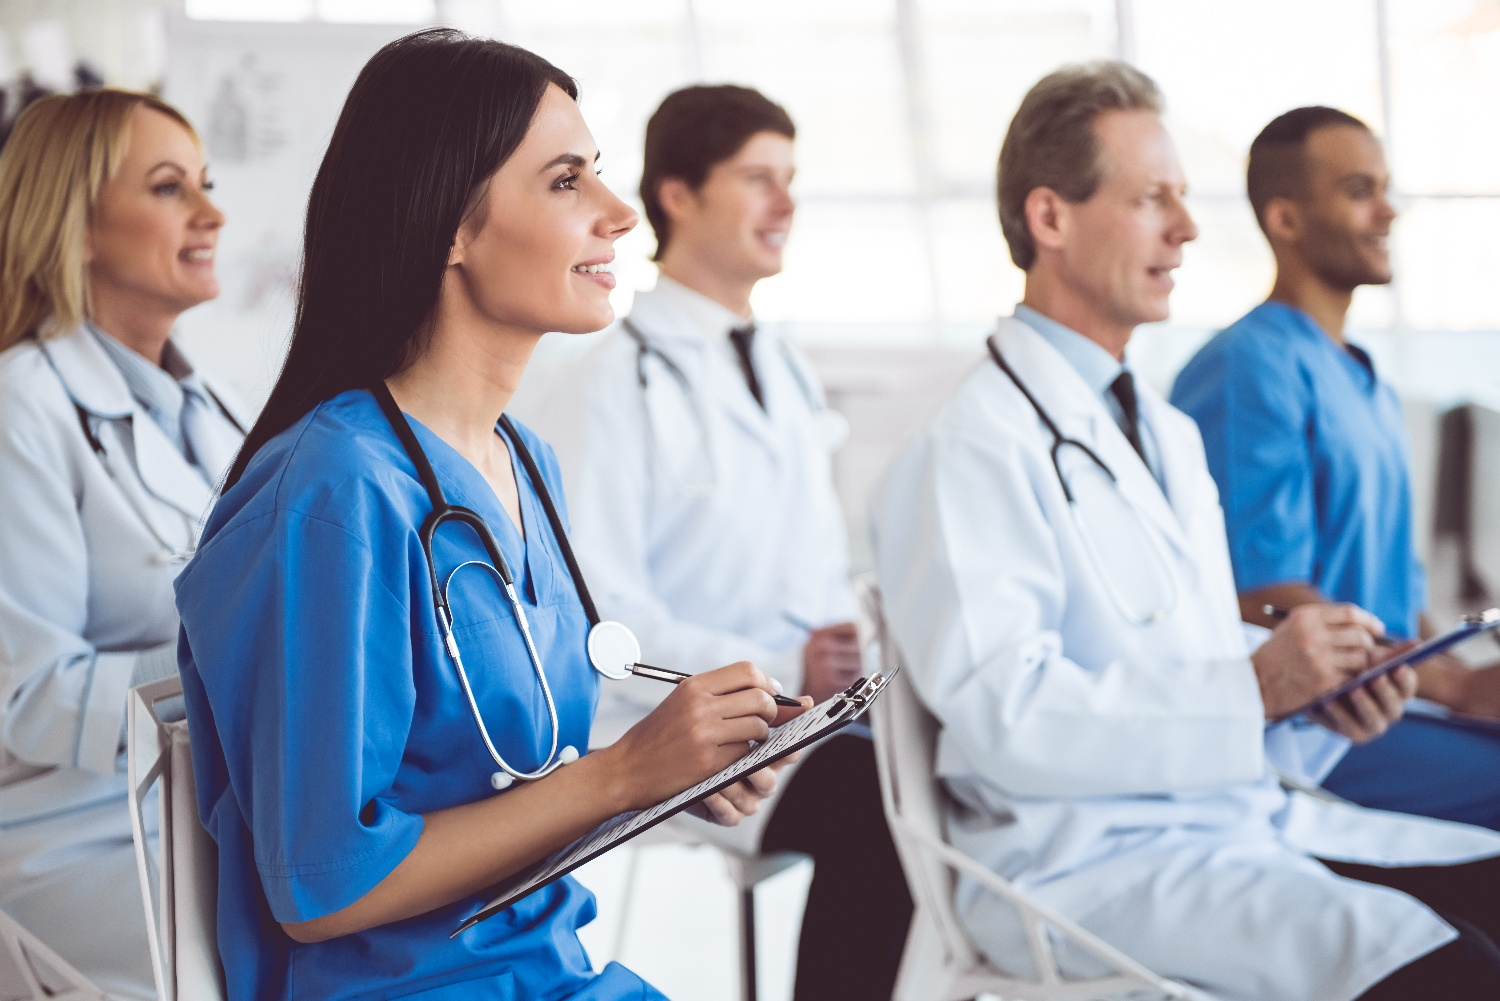 medical-doctors-at-the-conference-YVYN2D3-1